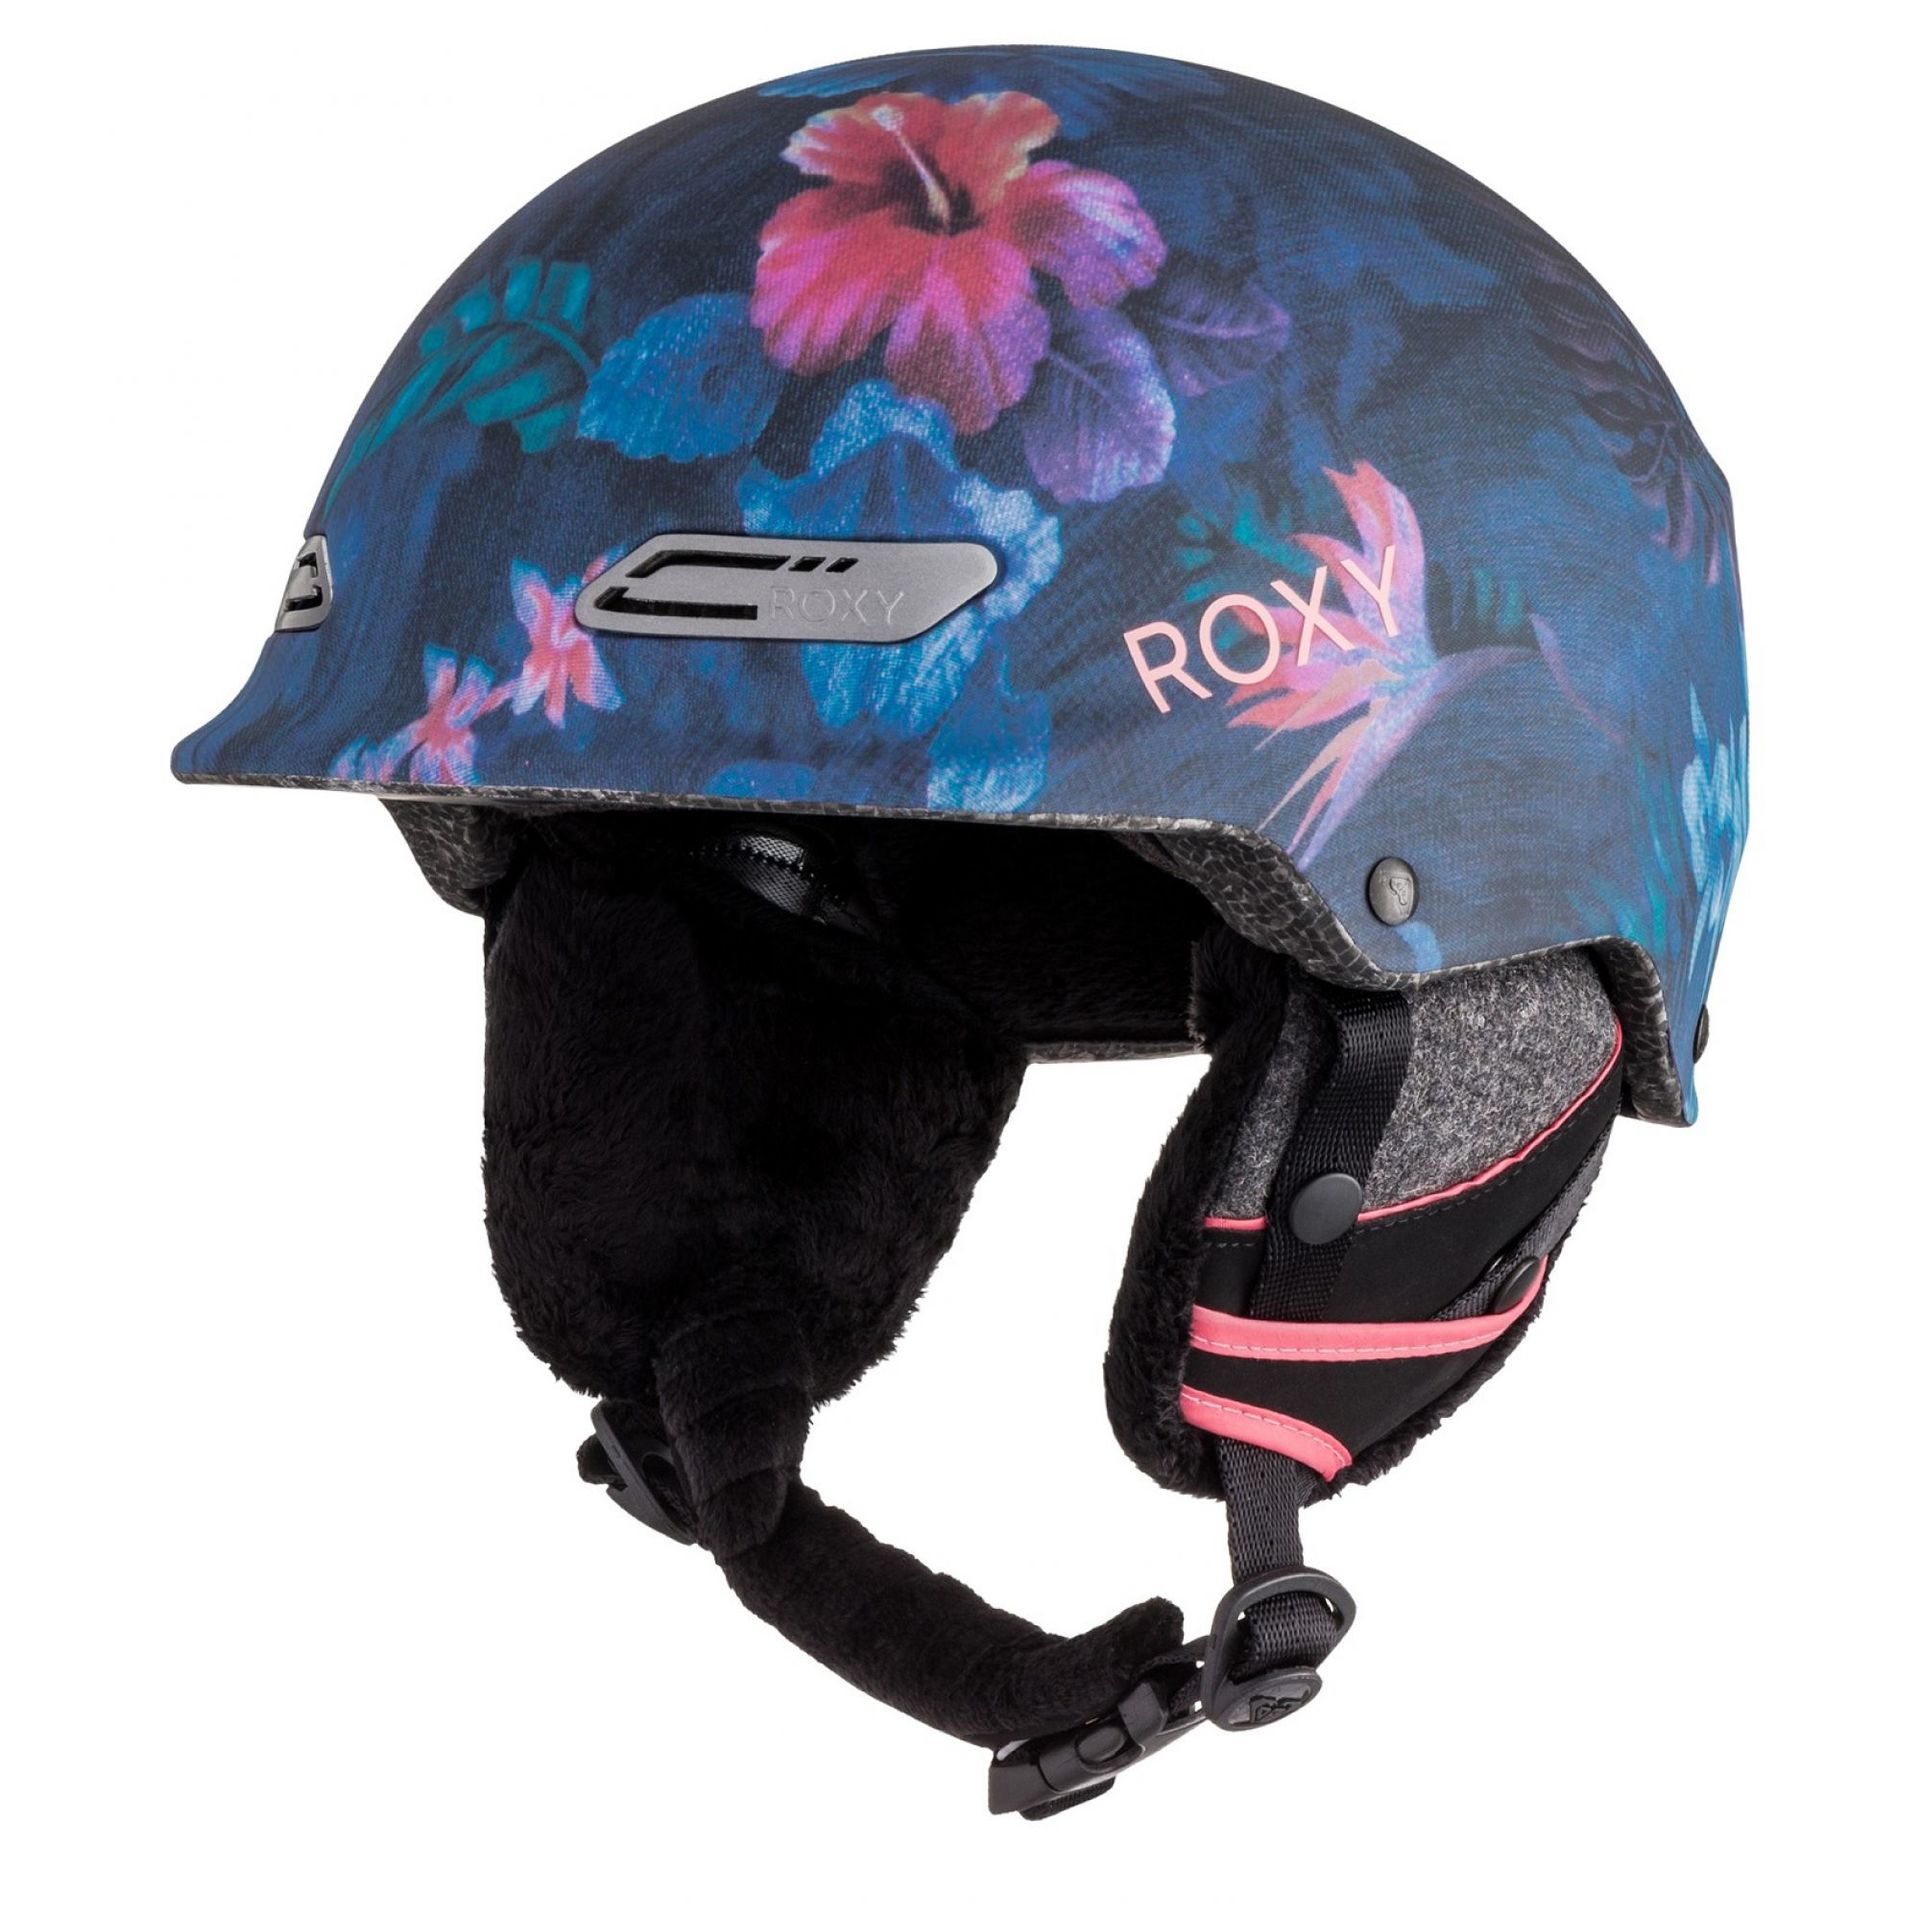 KASK ROXY POWER POWDER MLR6 HAWAIIAN TROPIK